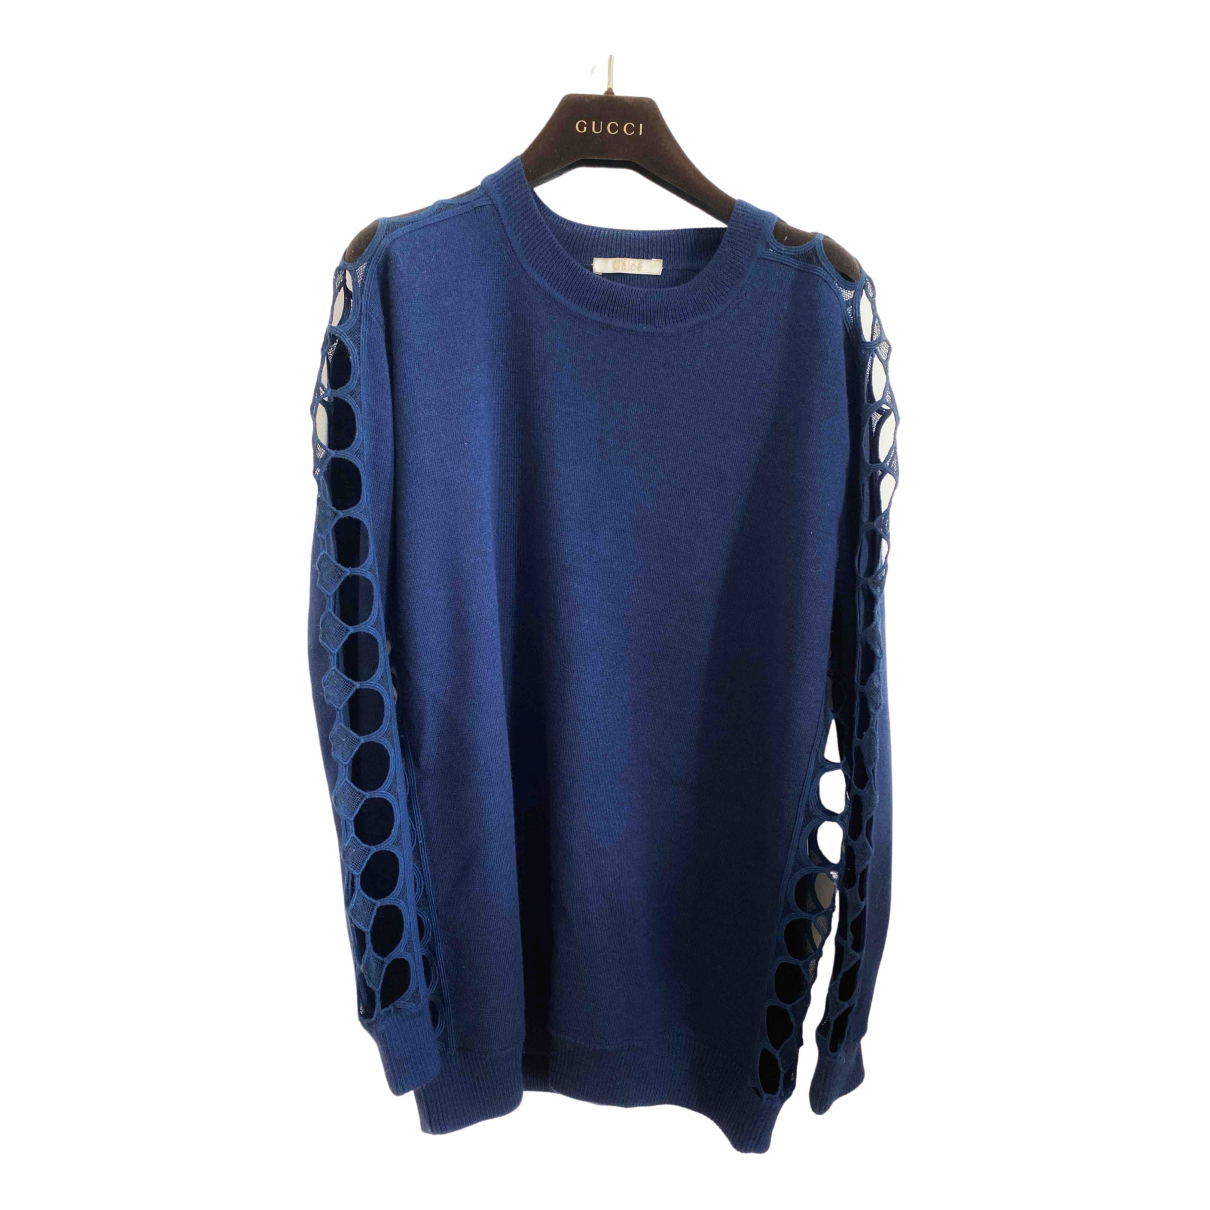 Chloé \N Blue Cashmere Knitwear for Women 38 FR